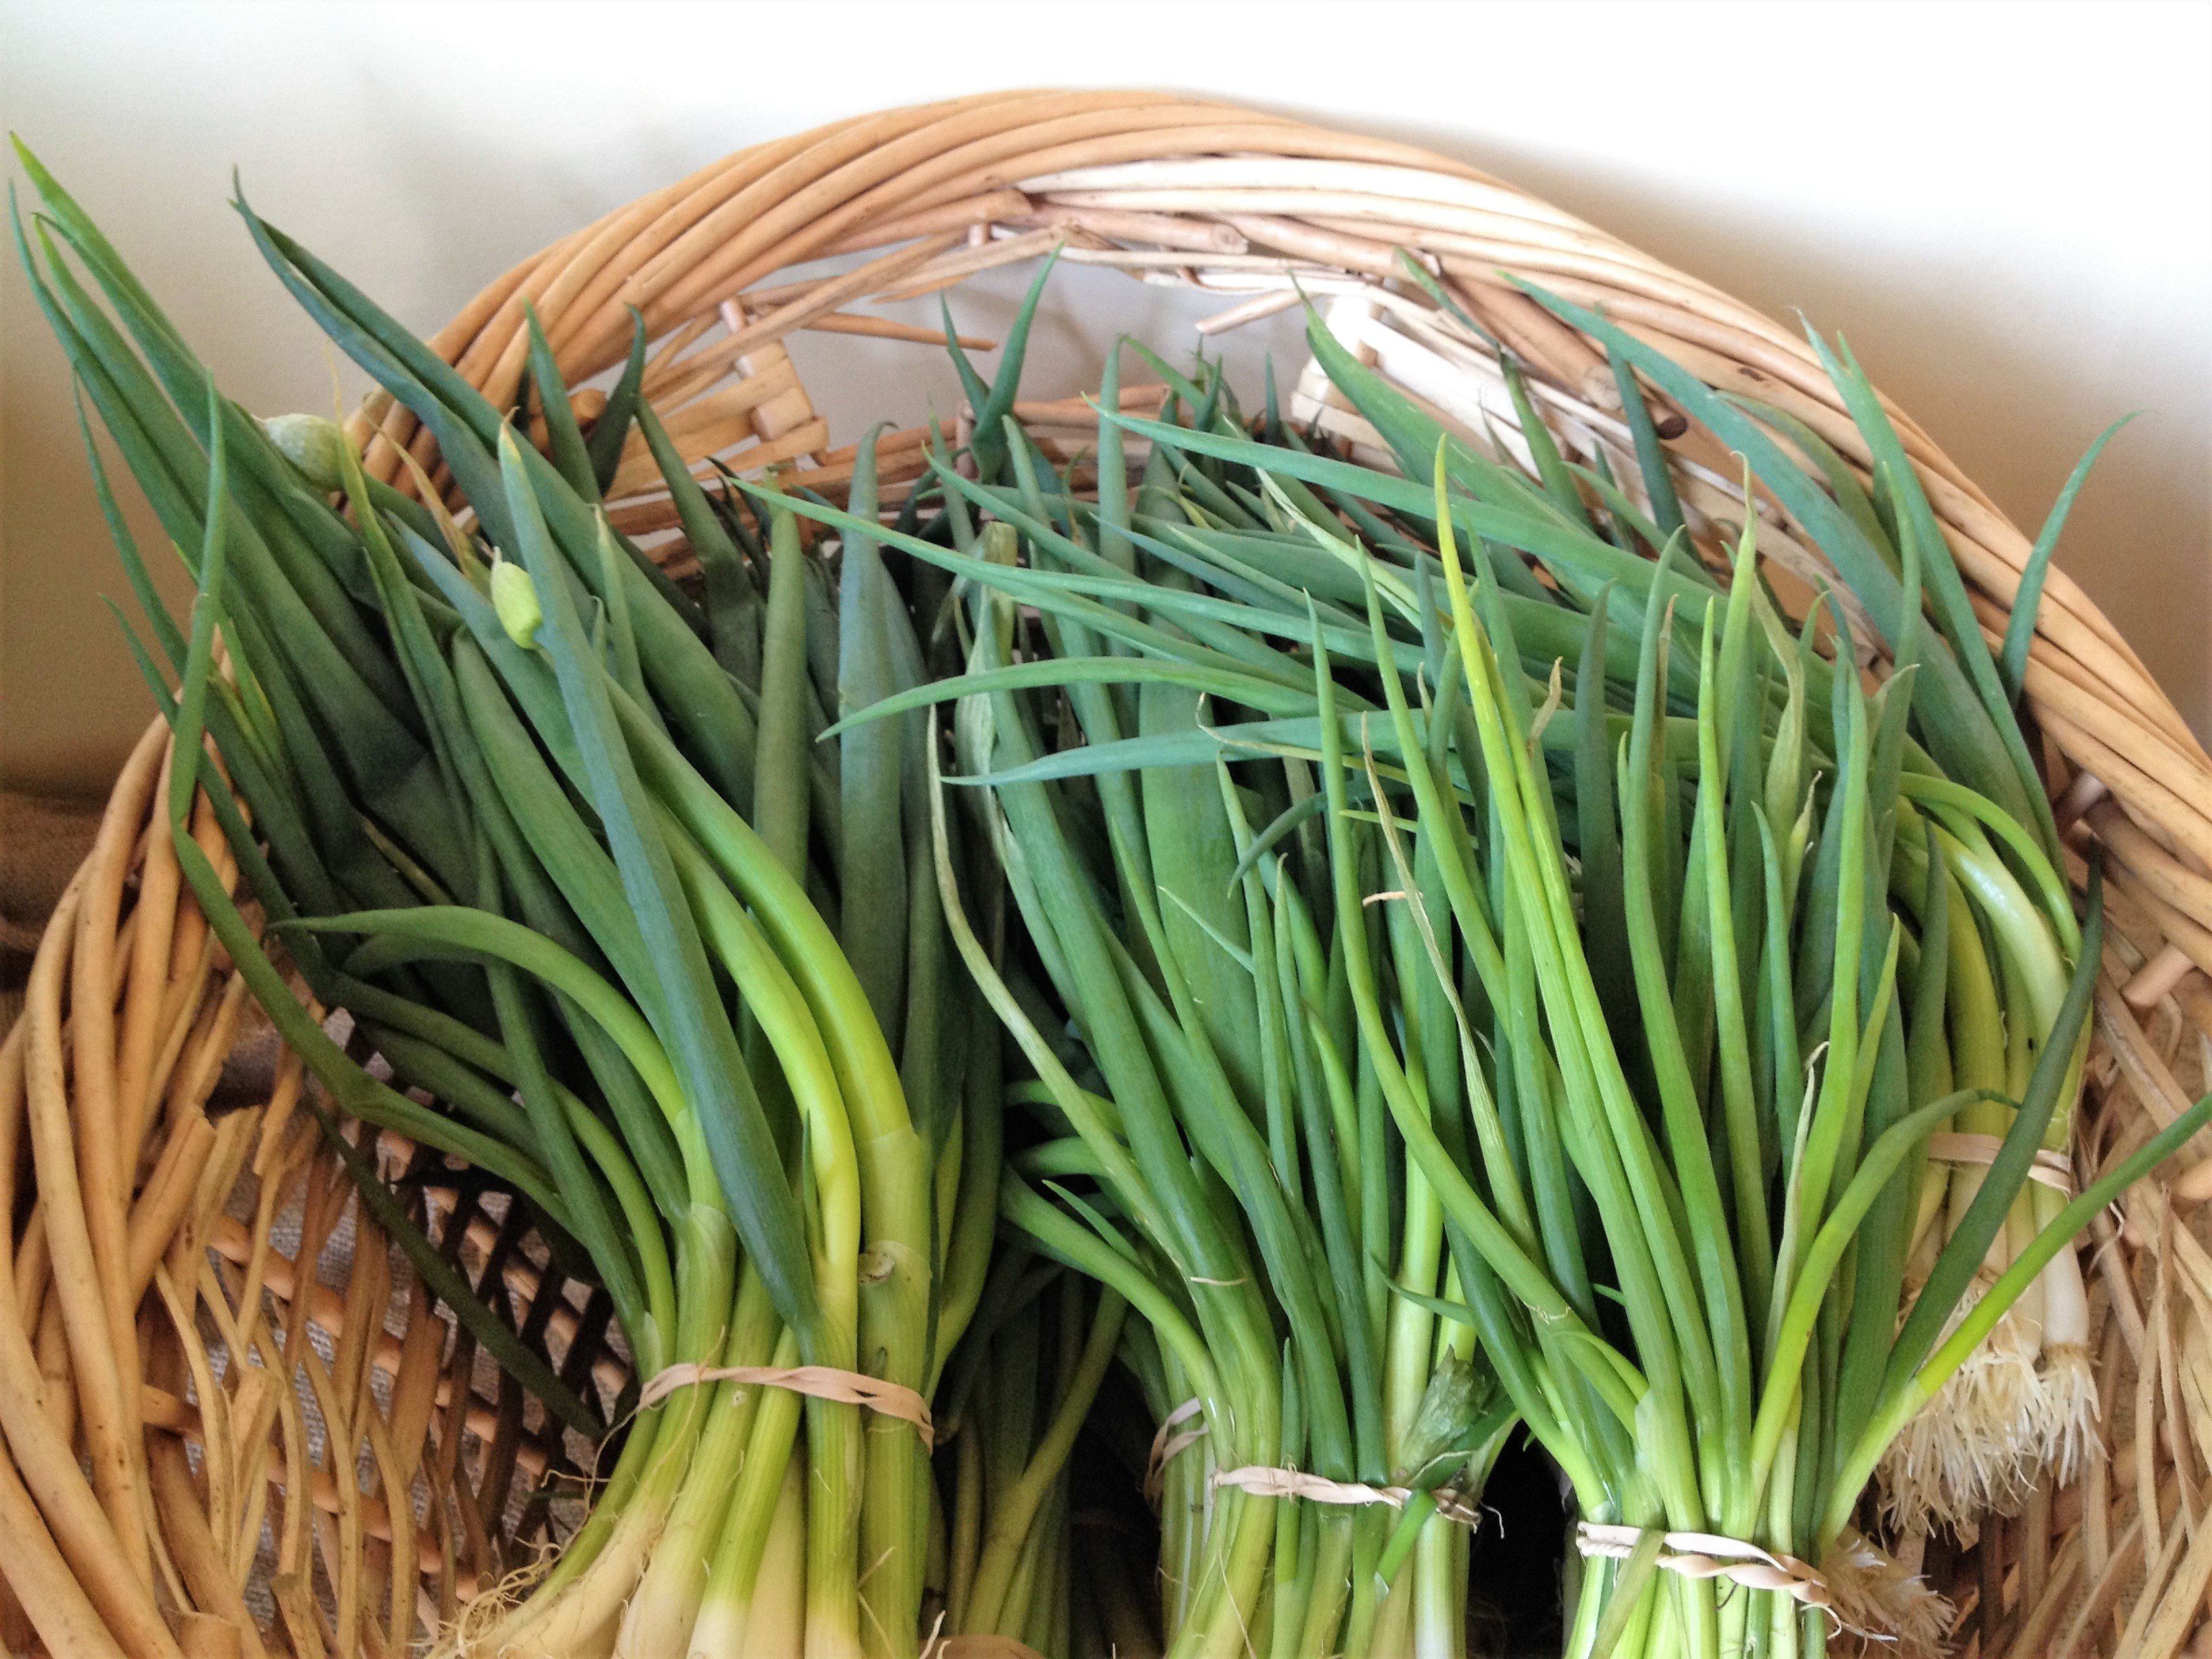 Green Onions From Godshall Farm